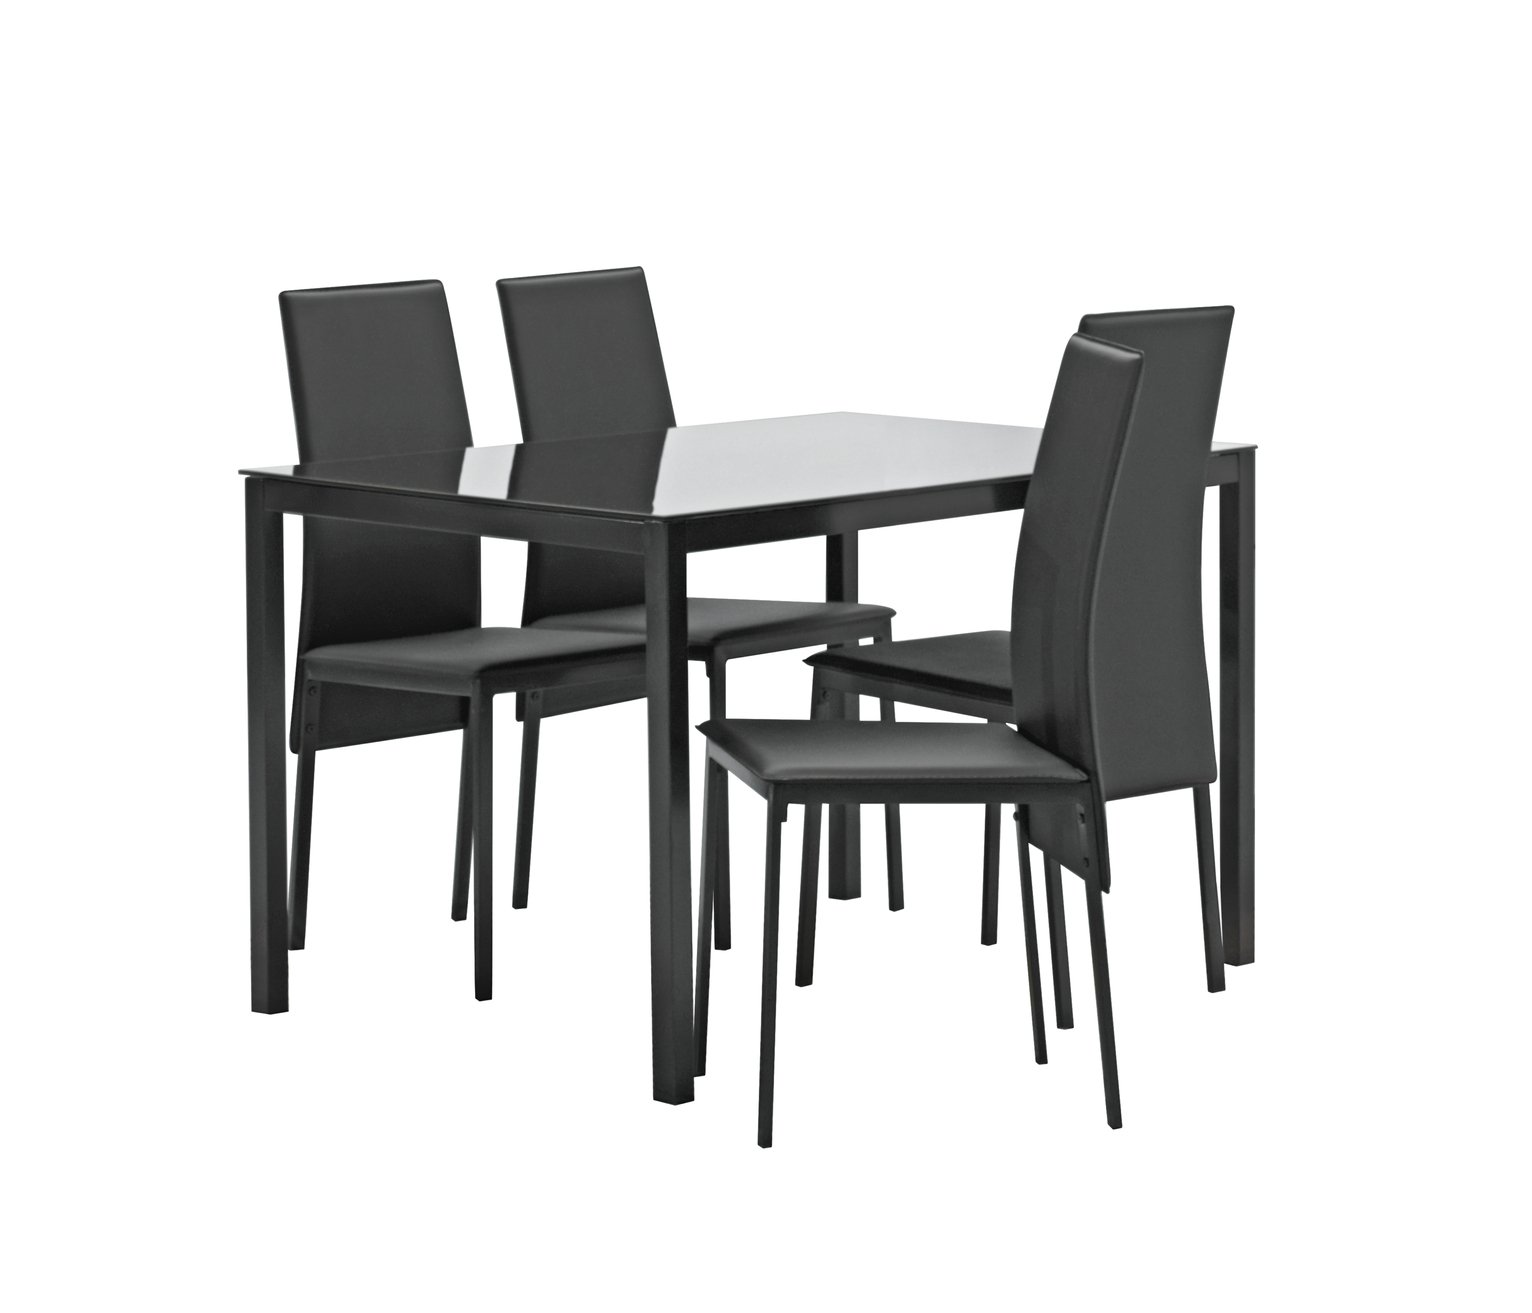 Buy Hygena Lido Glass Dining Table and 4 Chairs Black at  : 5037968RZ001AWebampw570amph513 from www.argos.co.uk size 570 x 513 jpeg 21kB